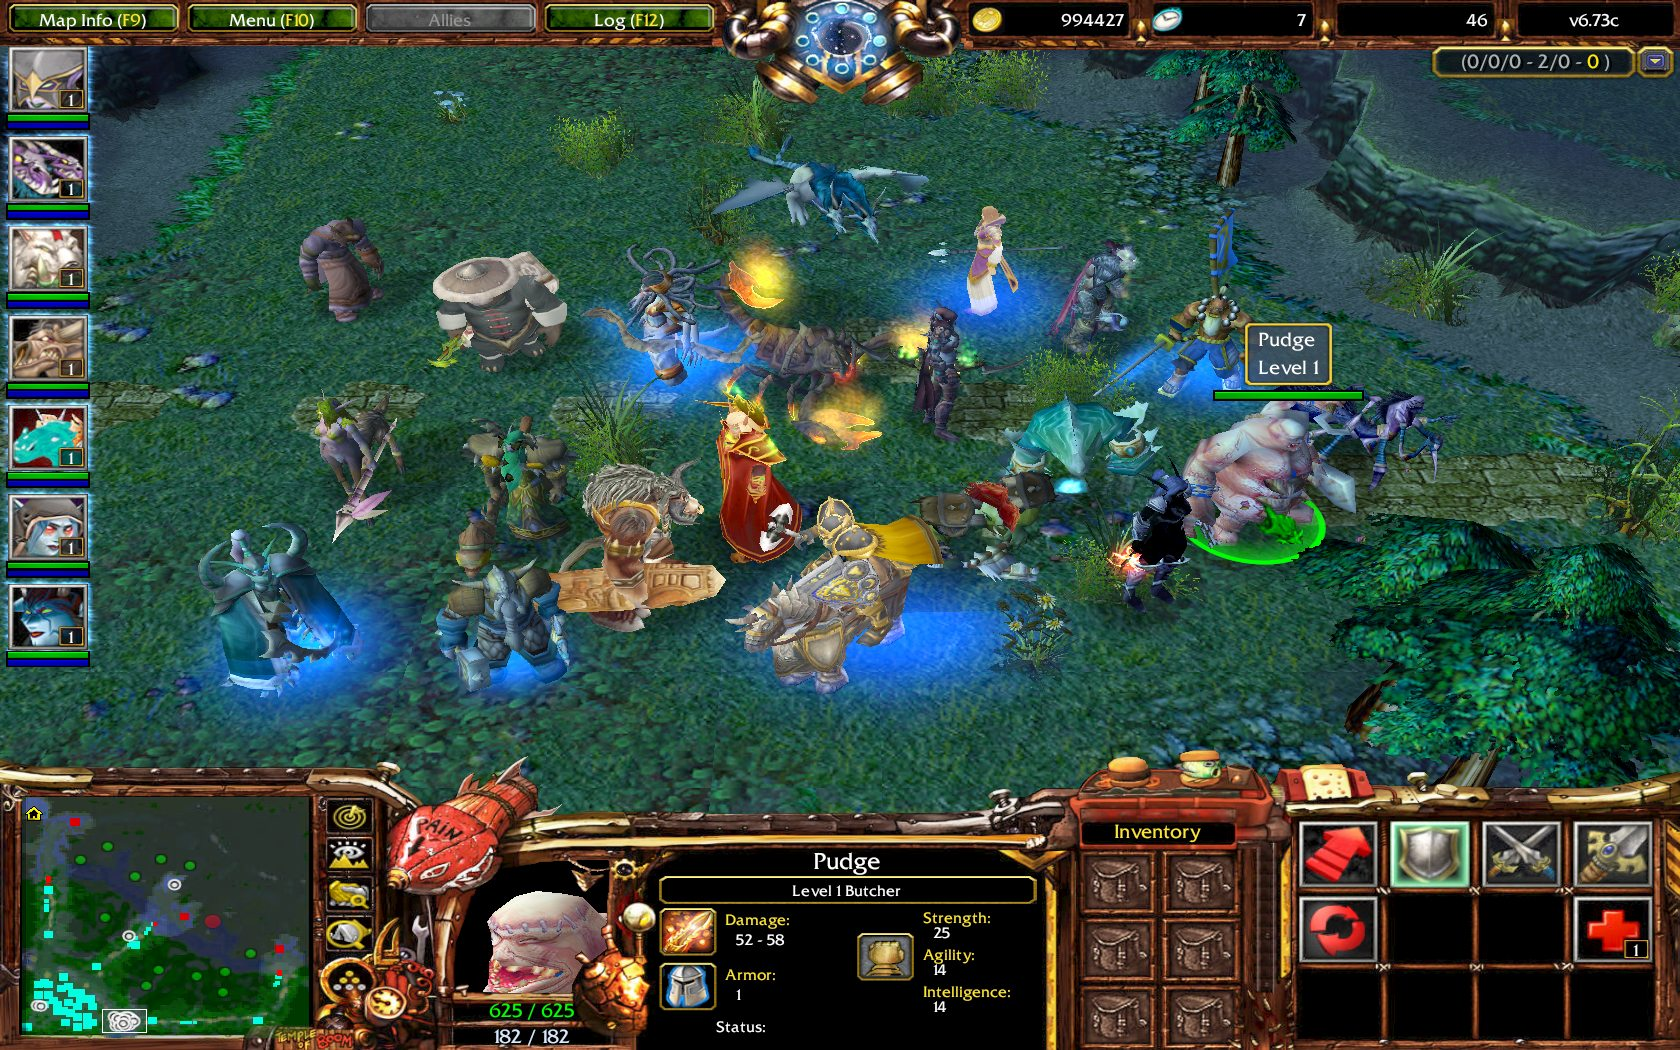 Warcraft iii patch 126a dota 2 mod